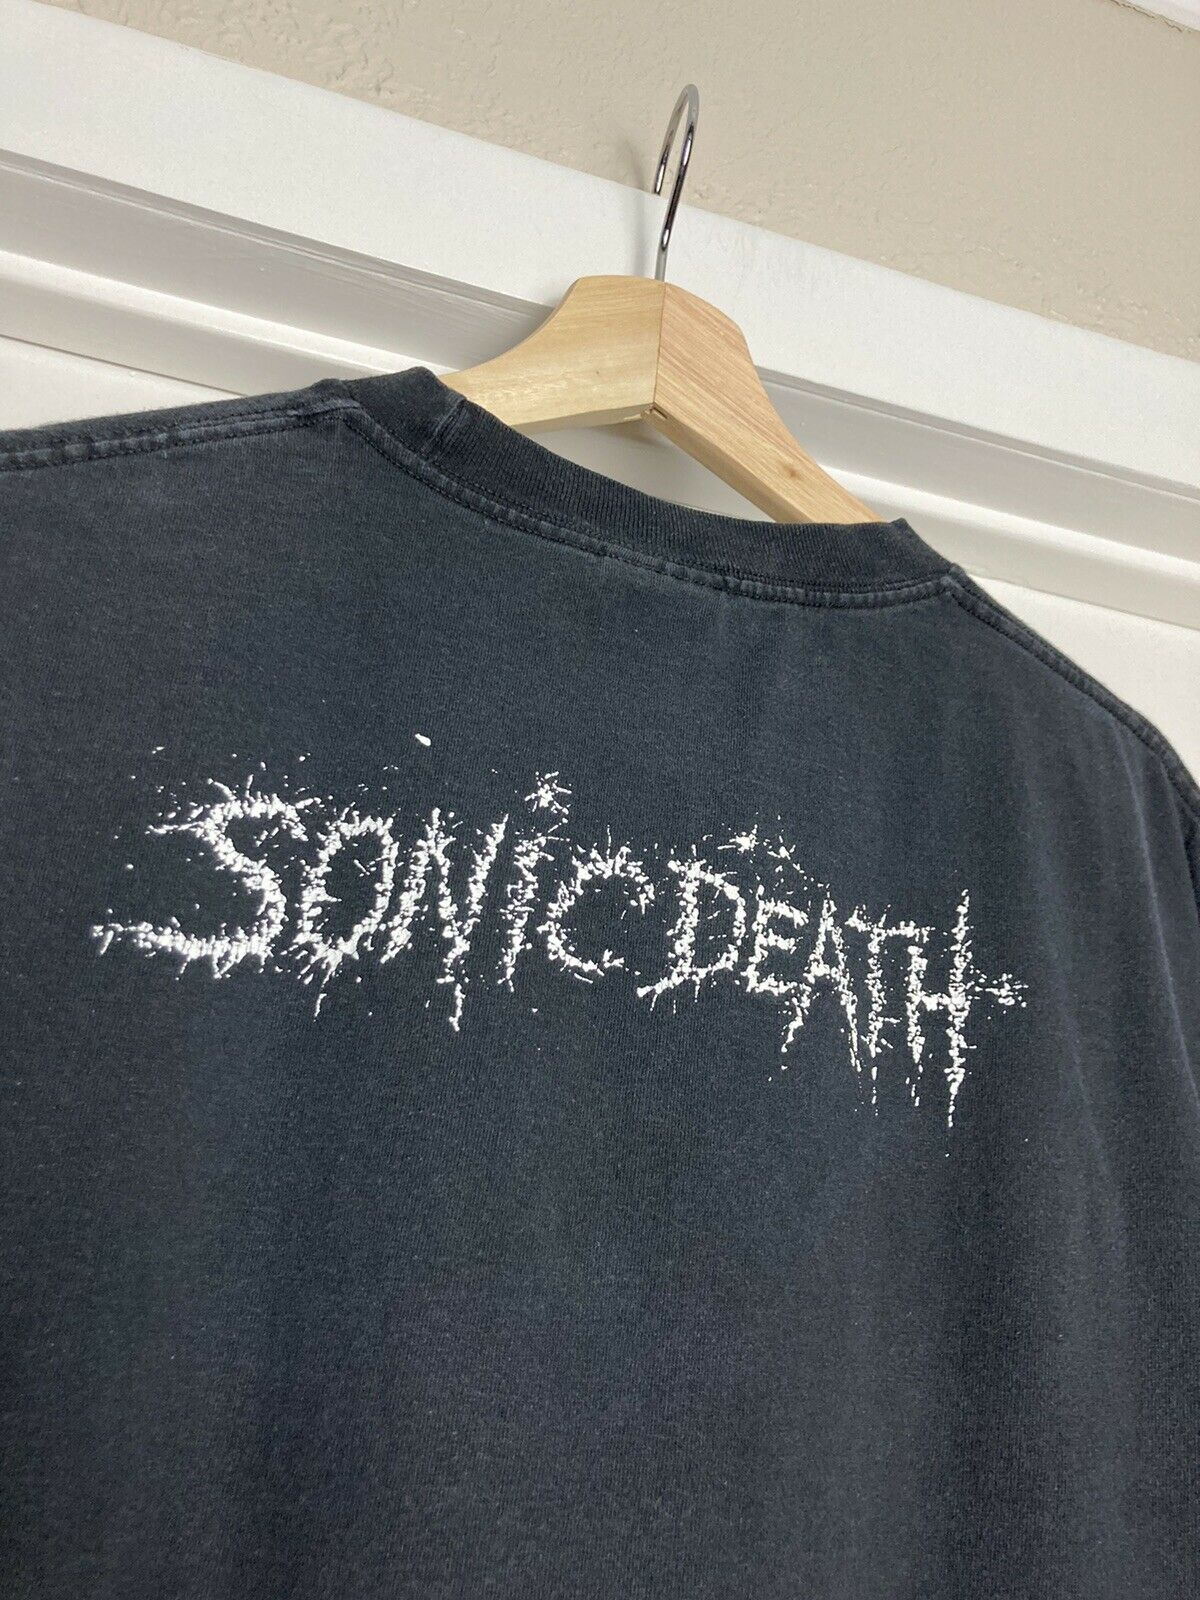 Vintage 90s Sonic Youth Confusion Is Sex T Shirt … - image 8